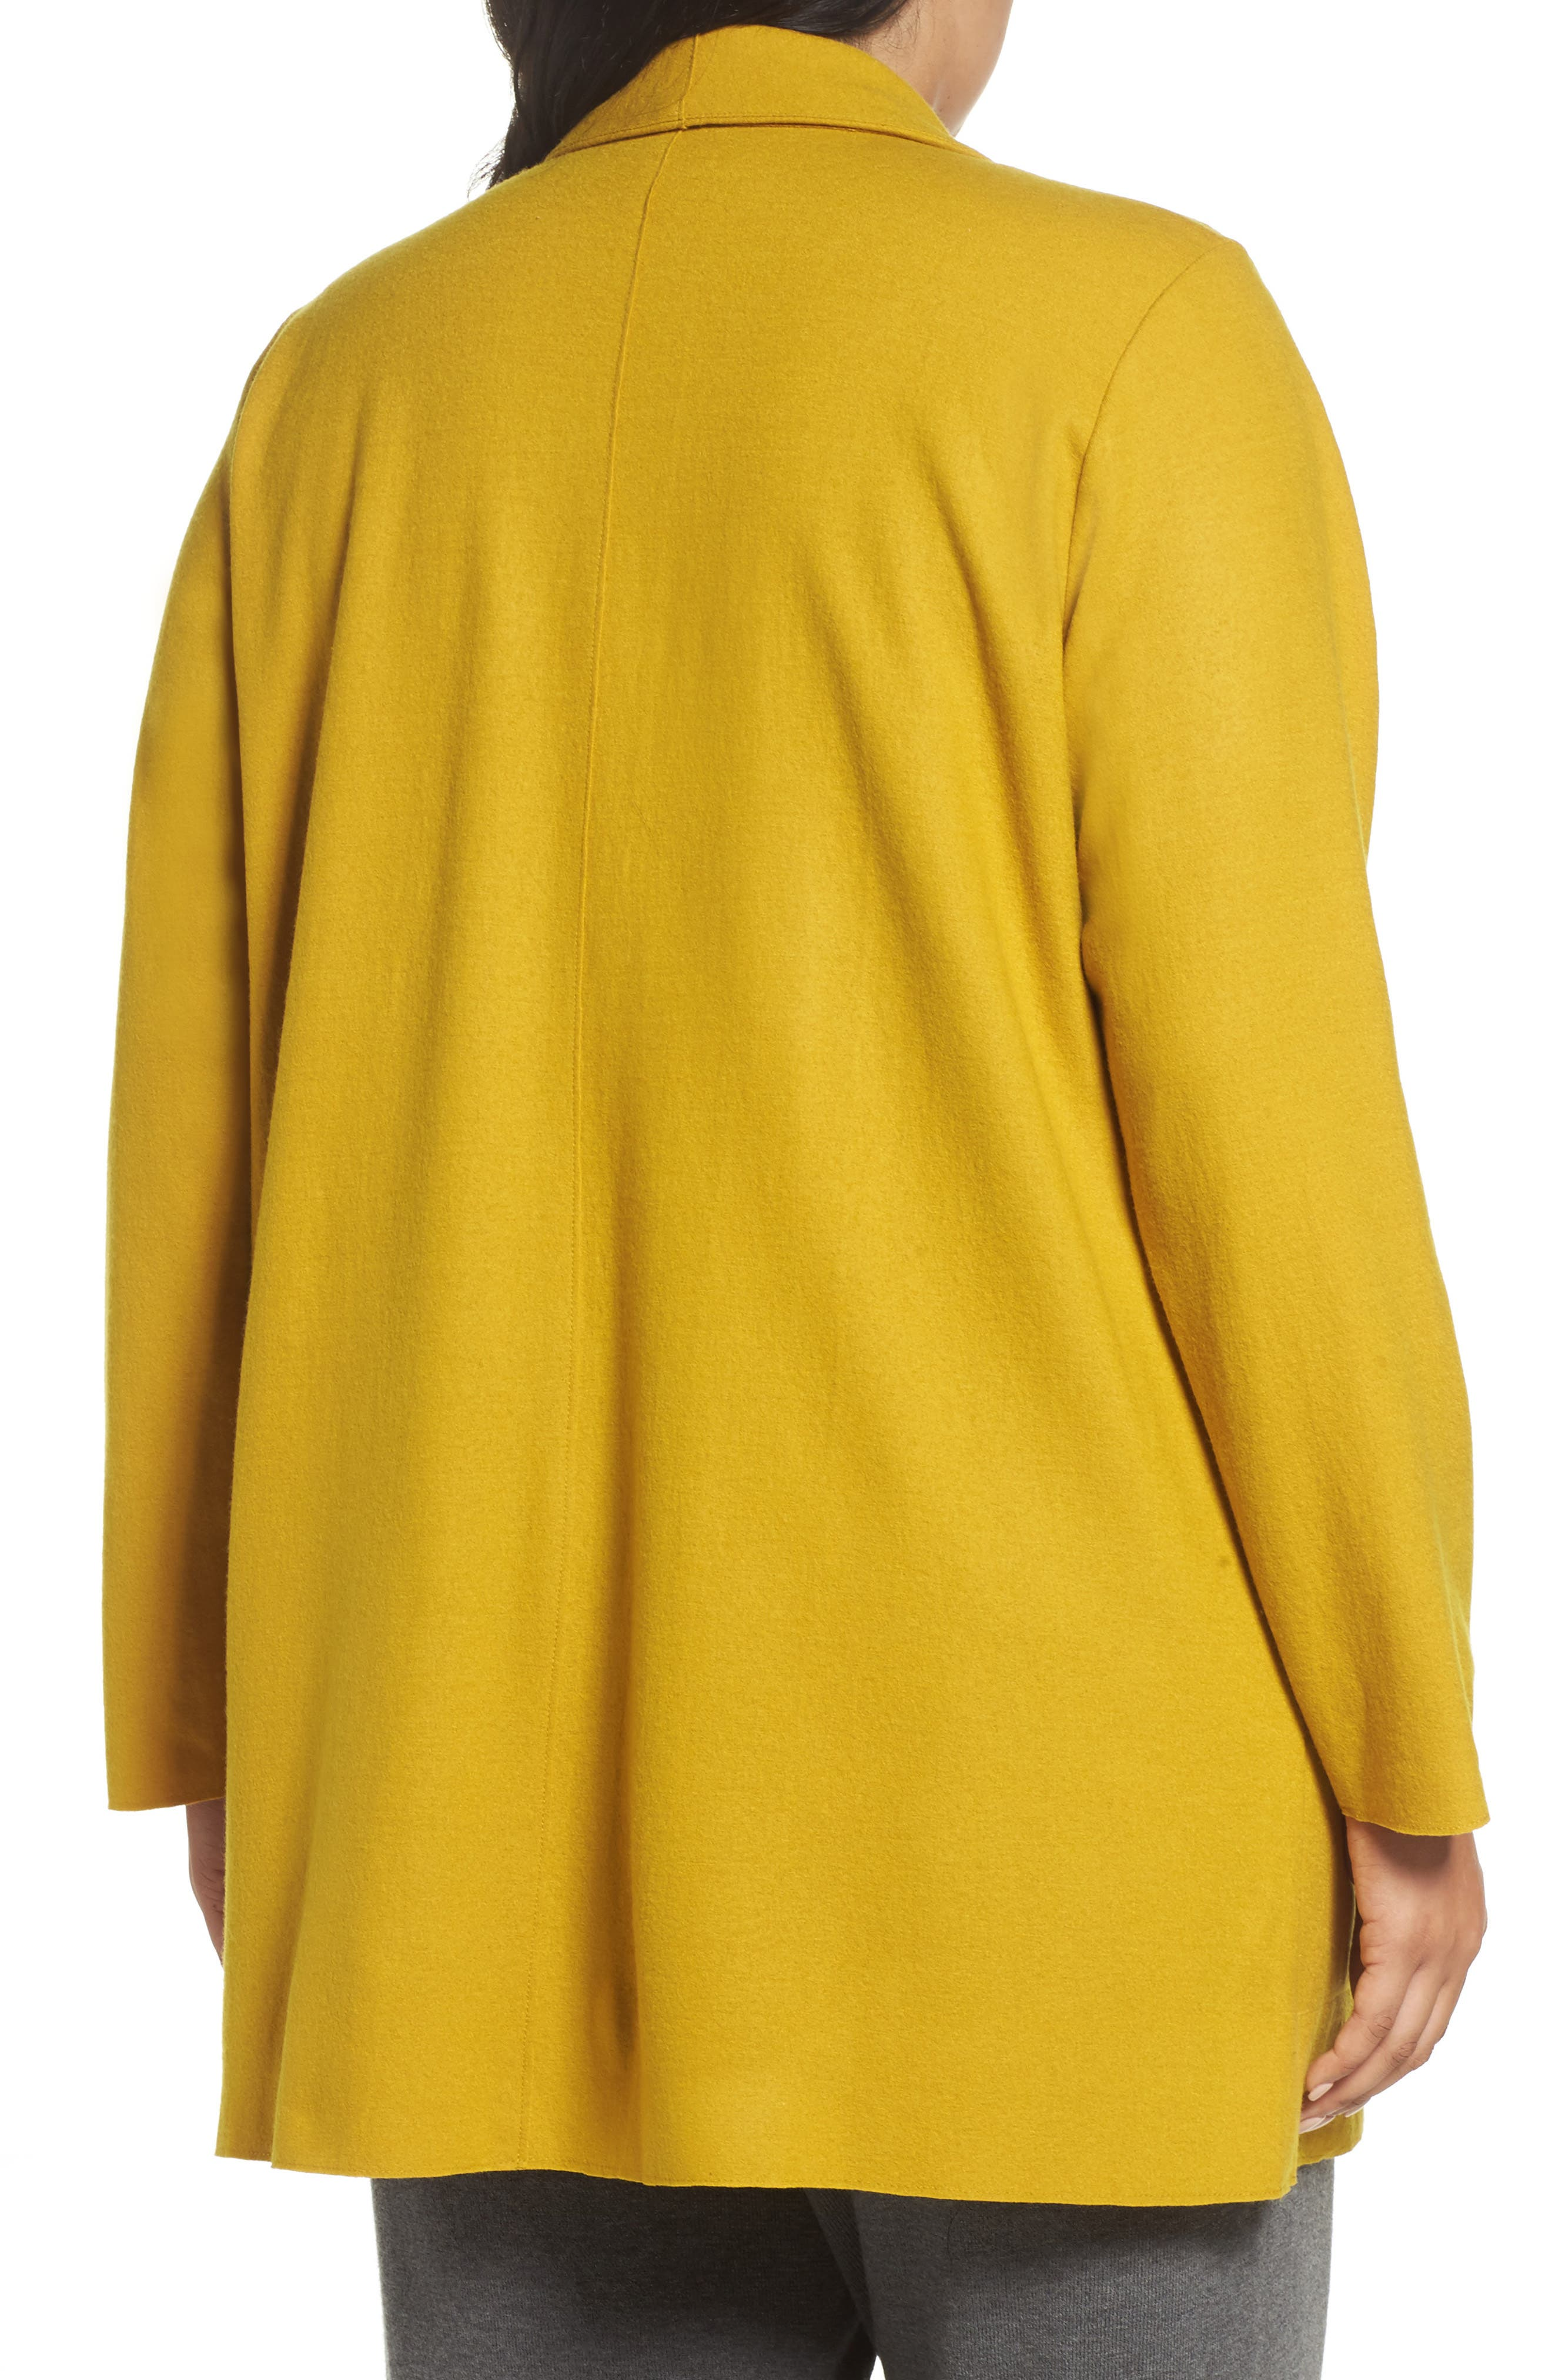 Alternate Image 2  - Eileen Fisher Boiled Wool Jacket (Plus Size)